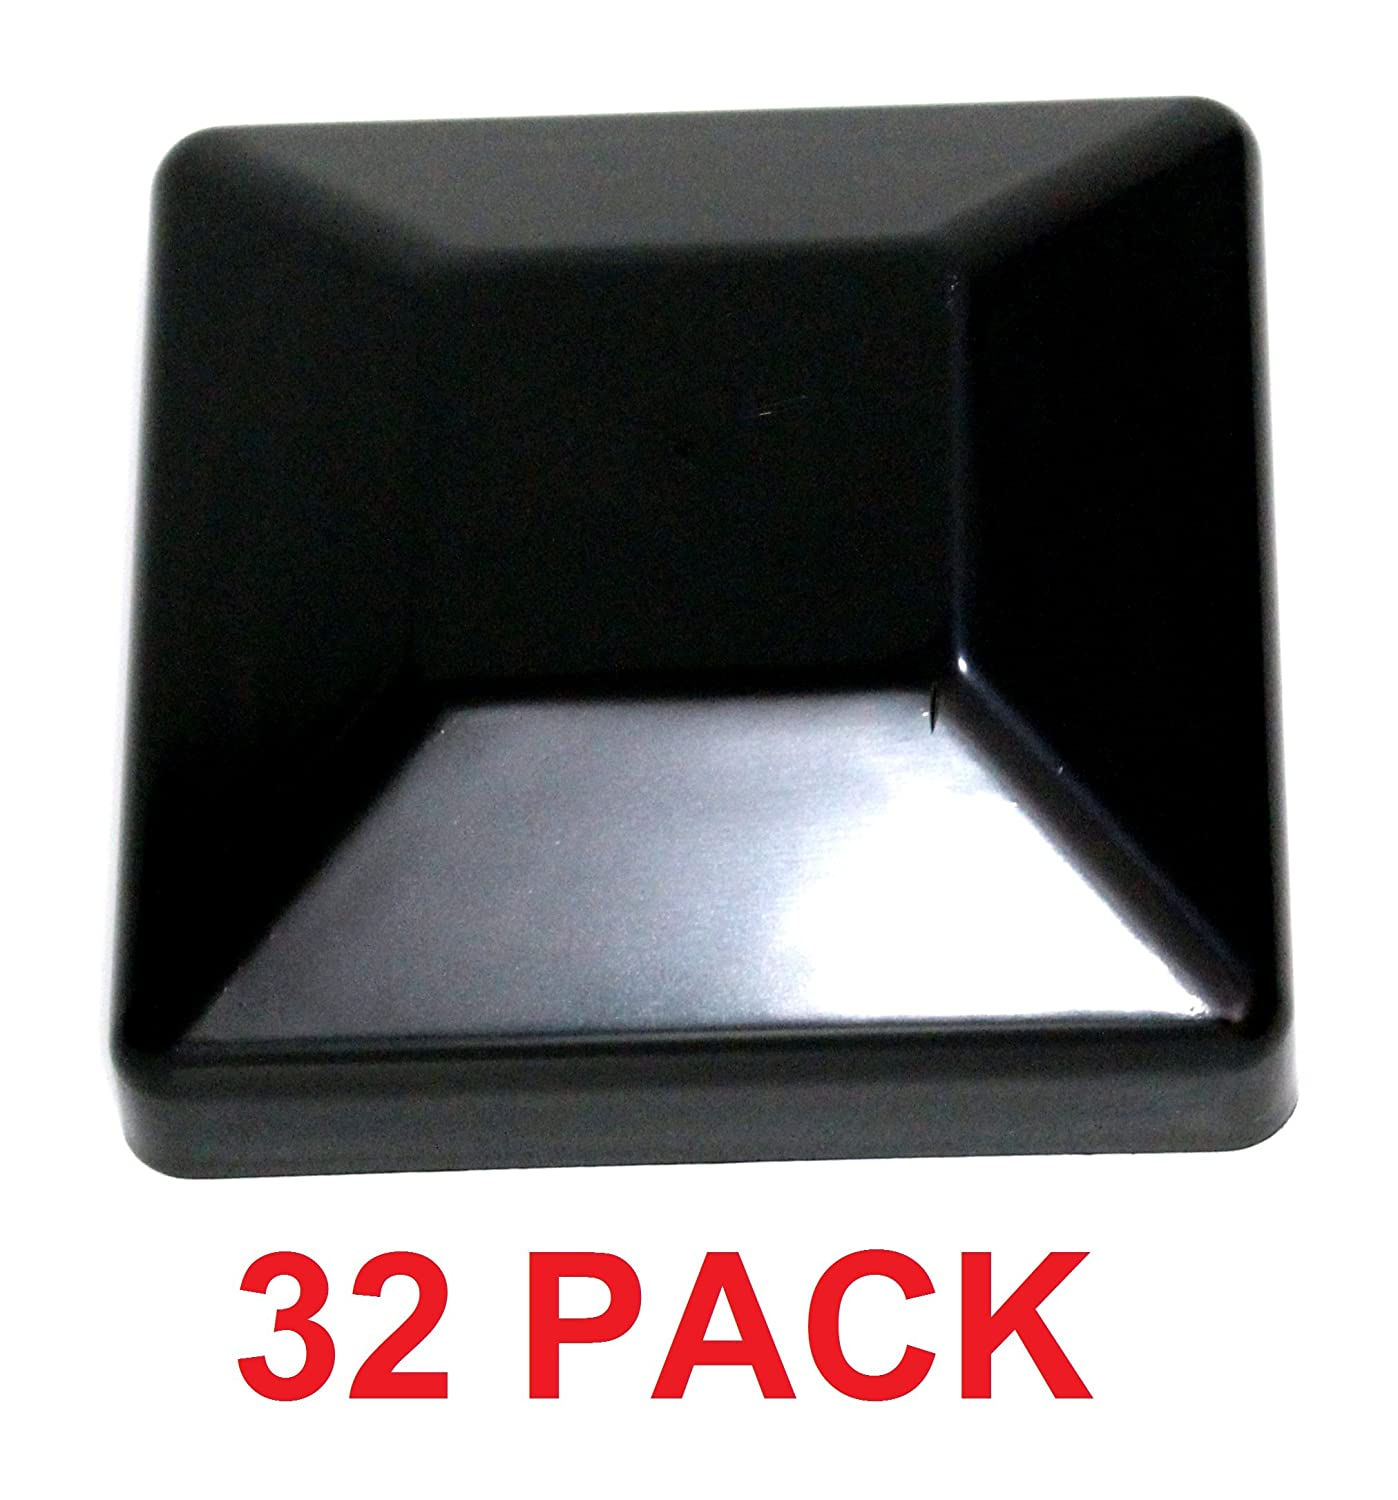 3 5//8 Pressure Treated Wood Made in USA MULITPACK Wholesale Bulk Pricing JSP Manufacturing Plastic New Fence Post Black Caps 4X4